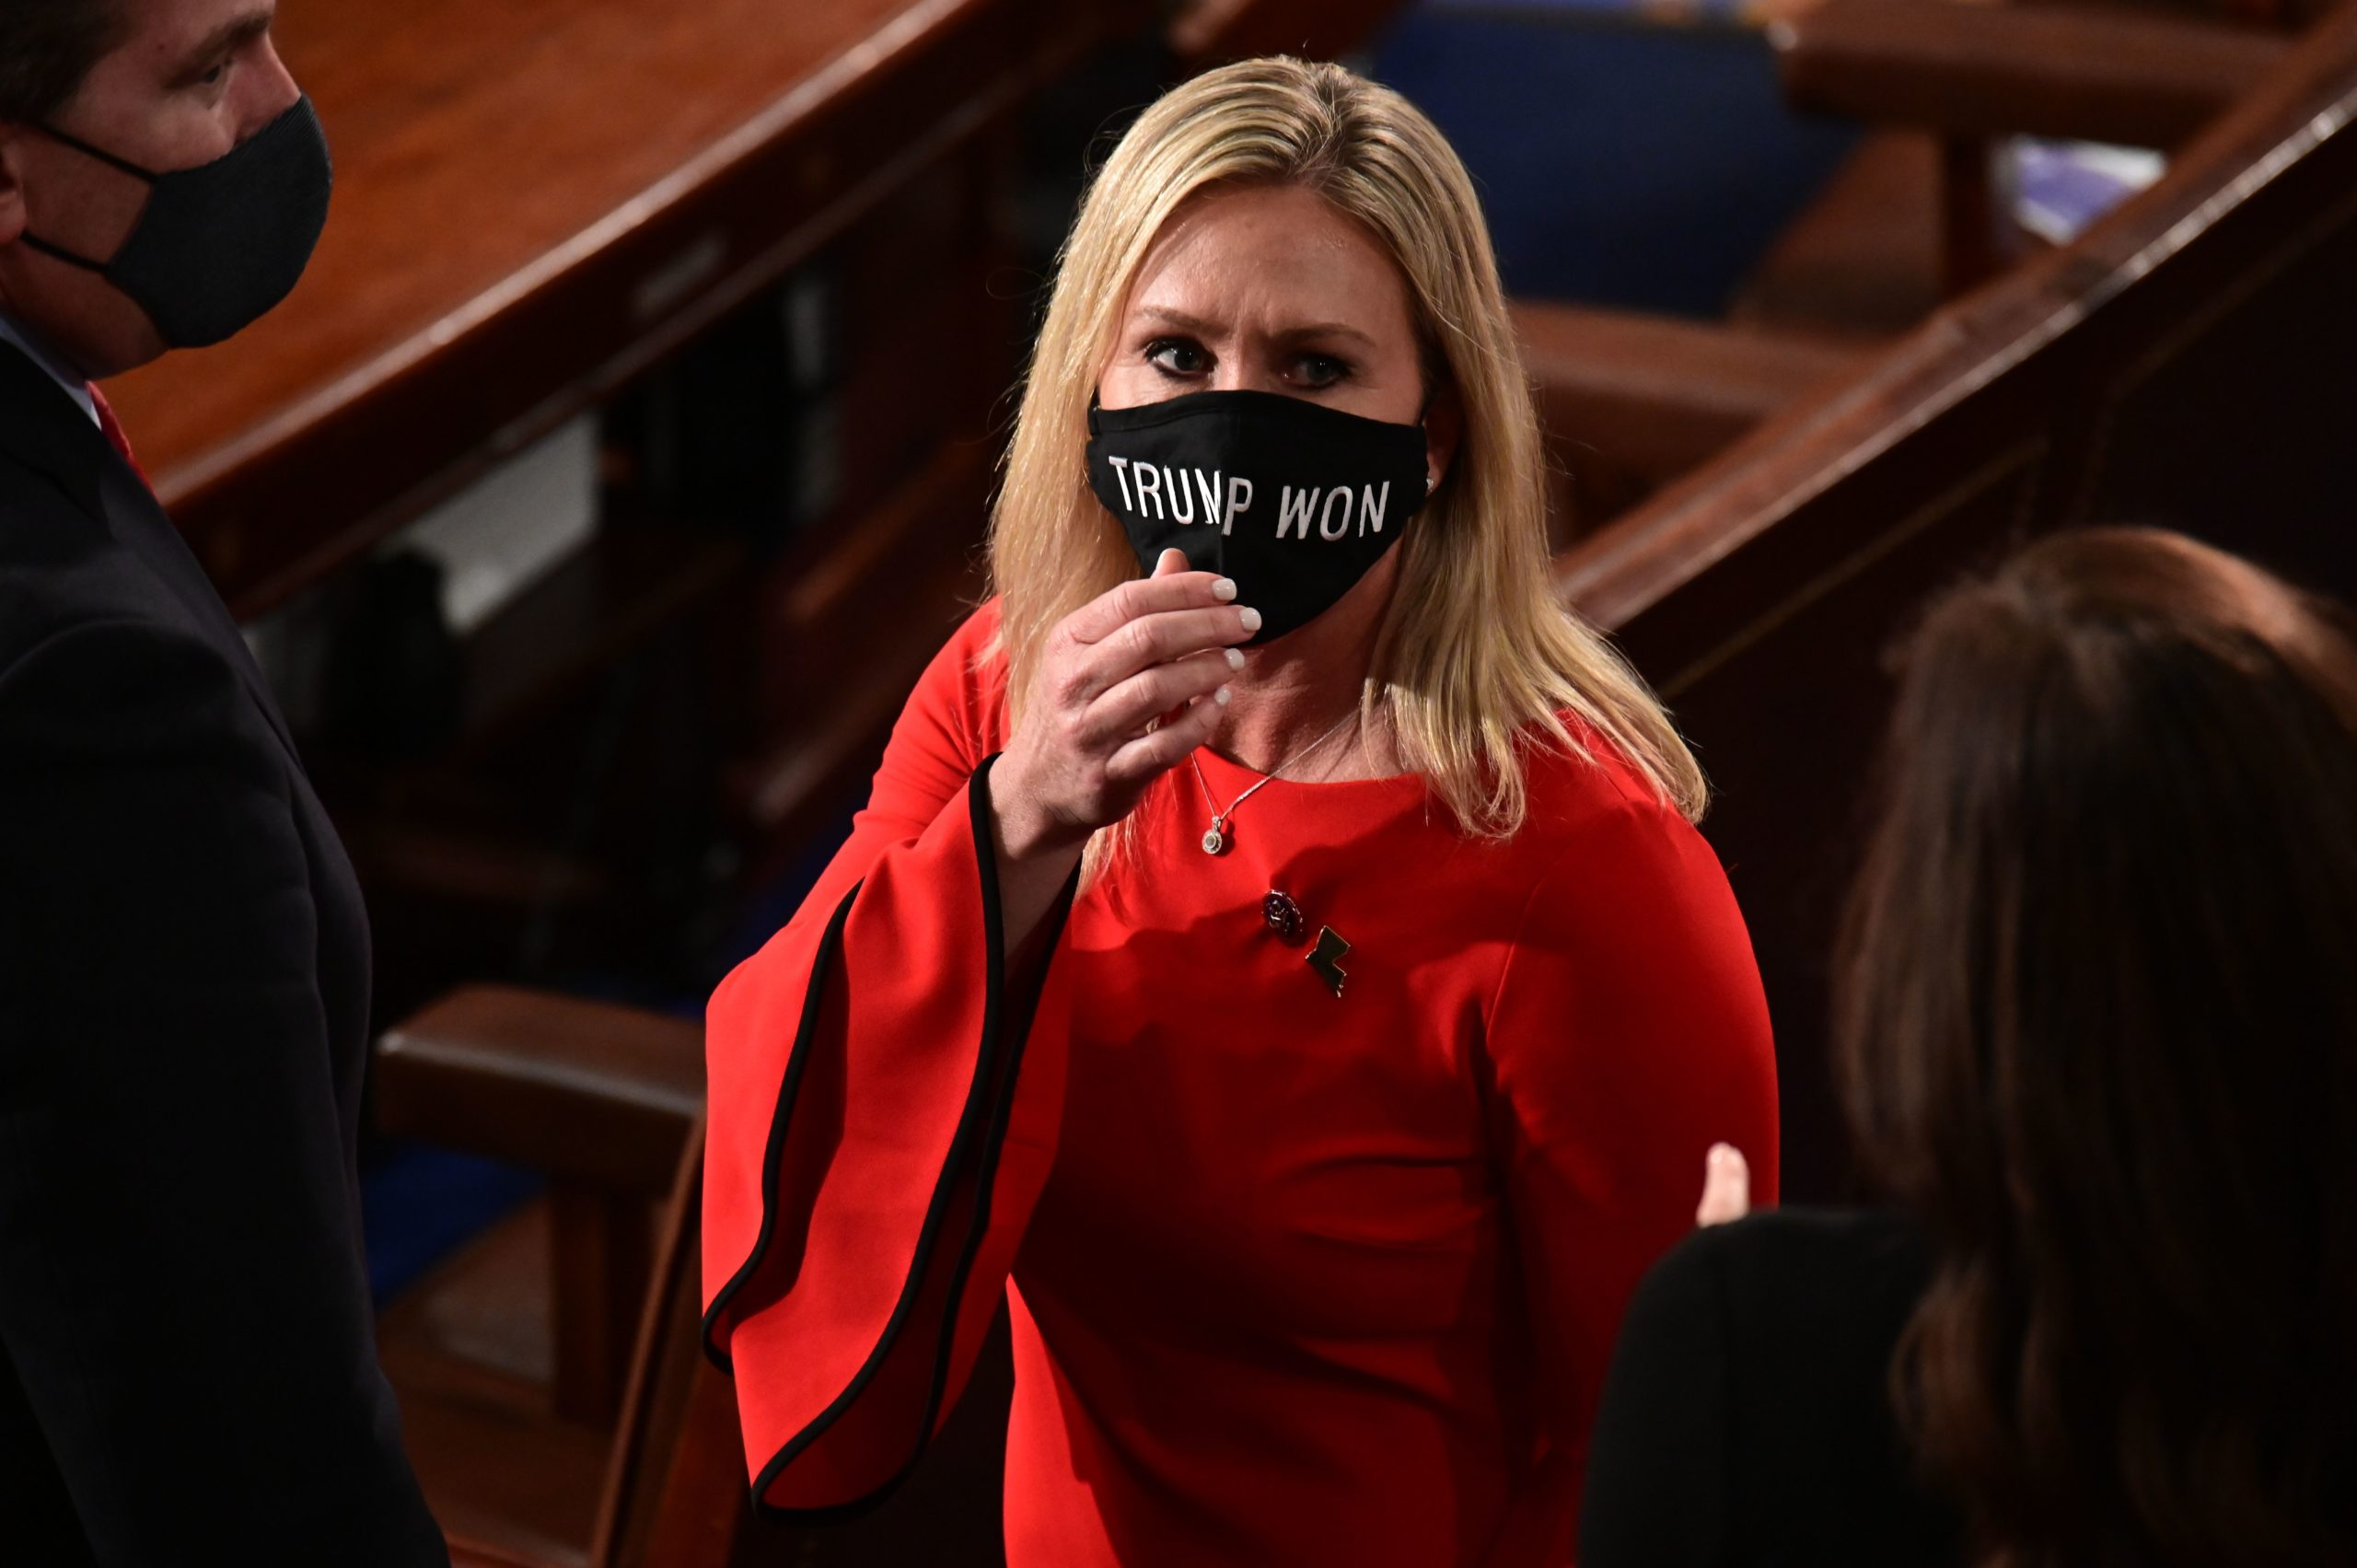 """US Rep. Marjorie Taylor Greene (R-GA) wears a """"Trump Won"""" face mask as she arrives on the floor of the House to take her oath of office as a newly elected member of the 117th House of Representatives in Washington, DC on January 3, 2021. (Photo by ERIN SCOTT / POOL / AFP) (Photo by ERIN SCOTT/POOL/AFP via Getty Images)"""